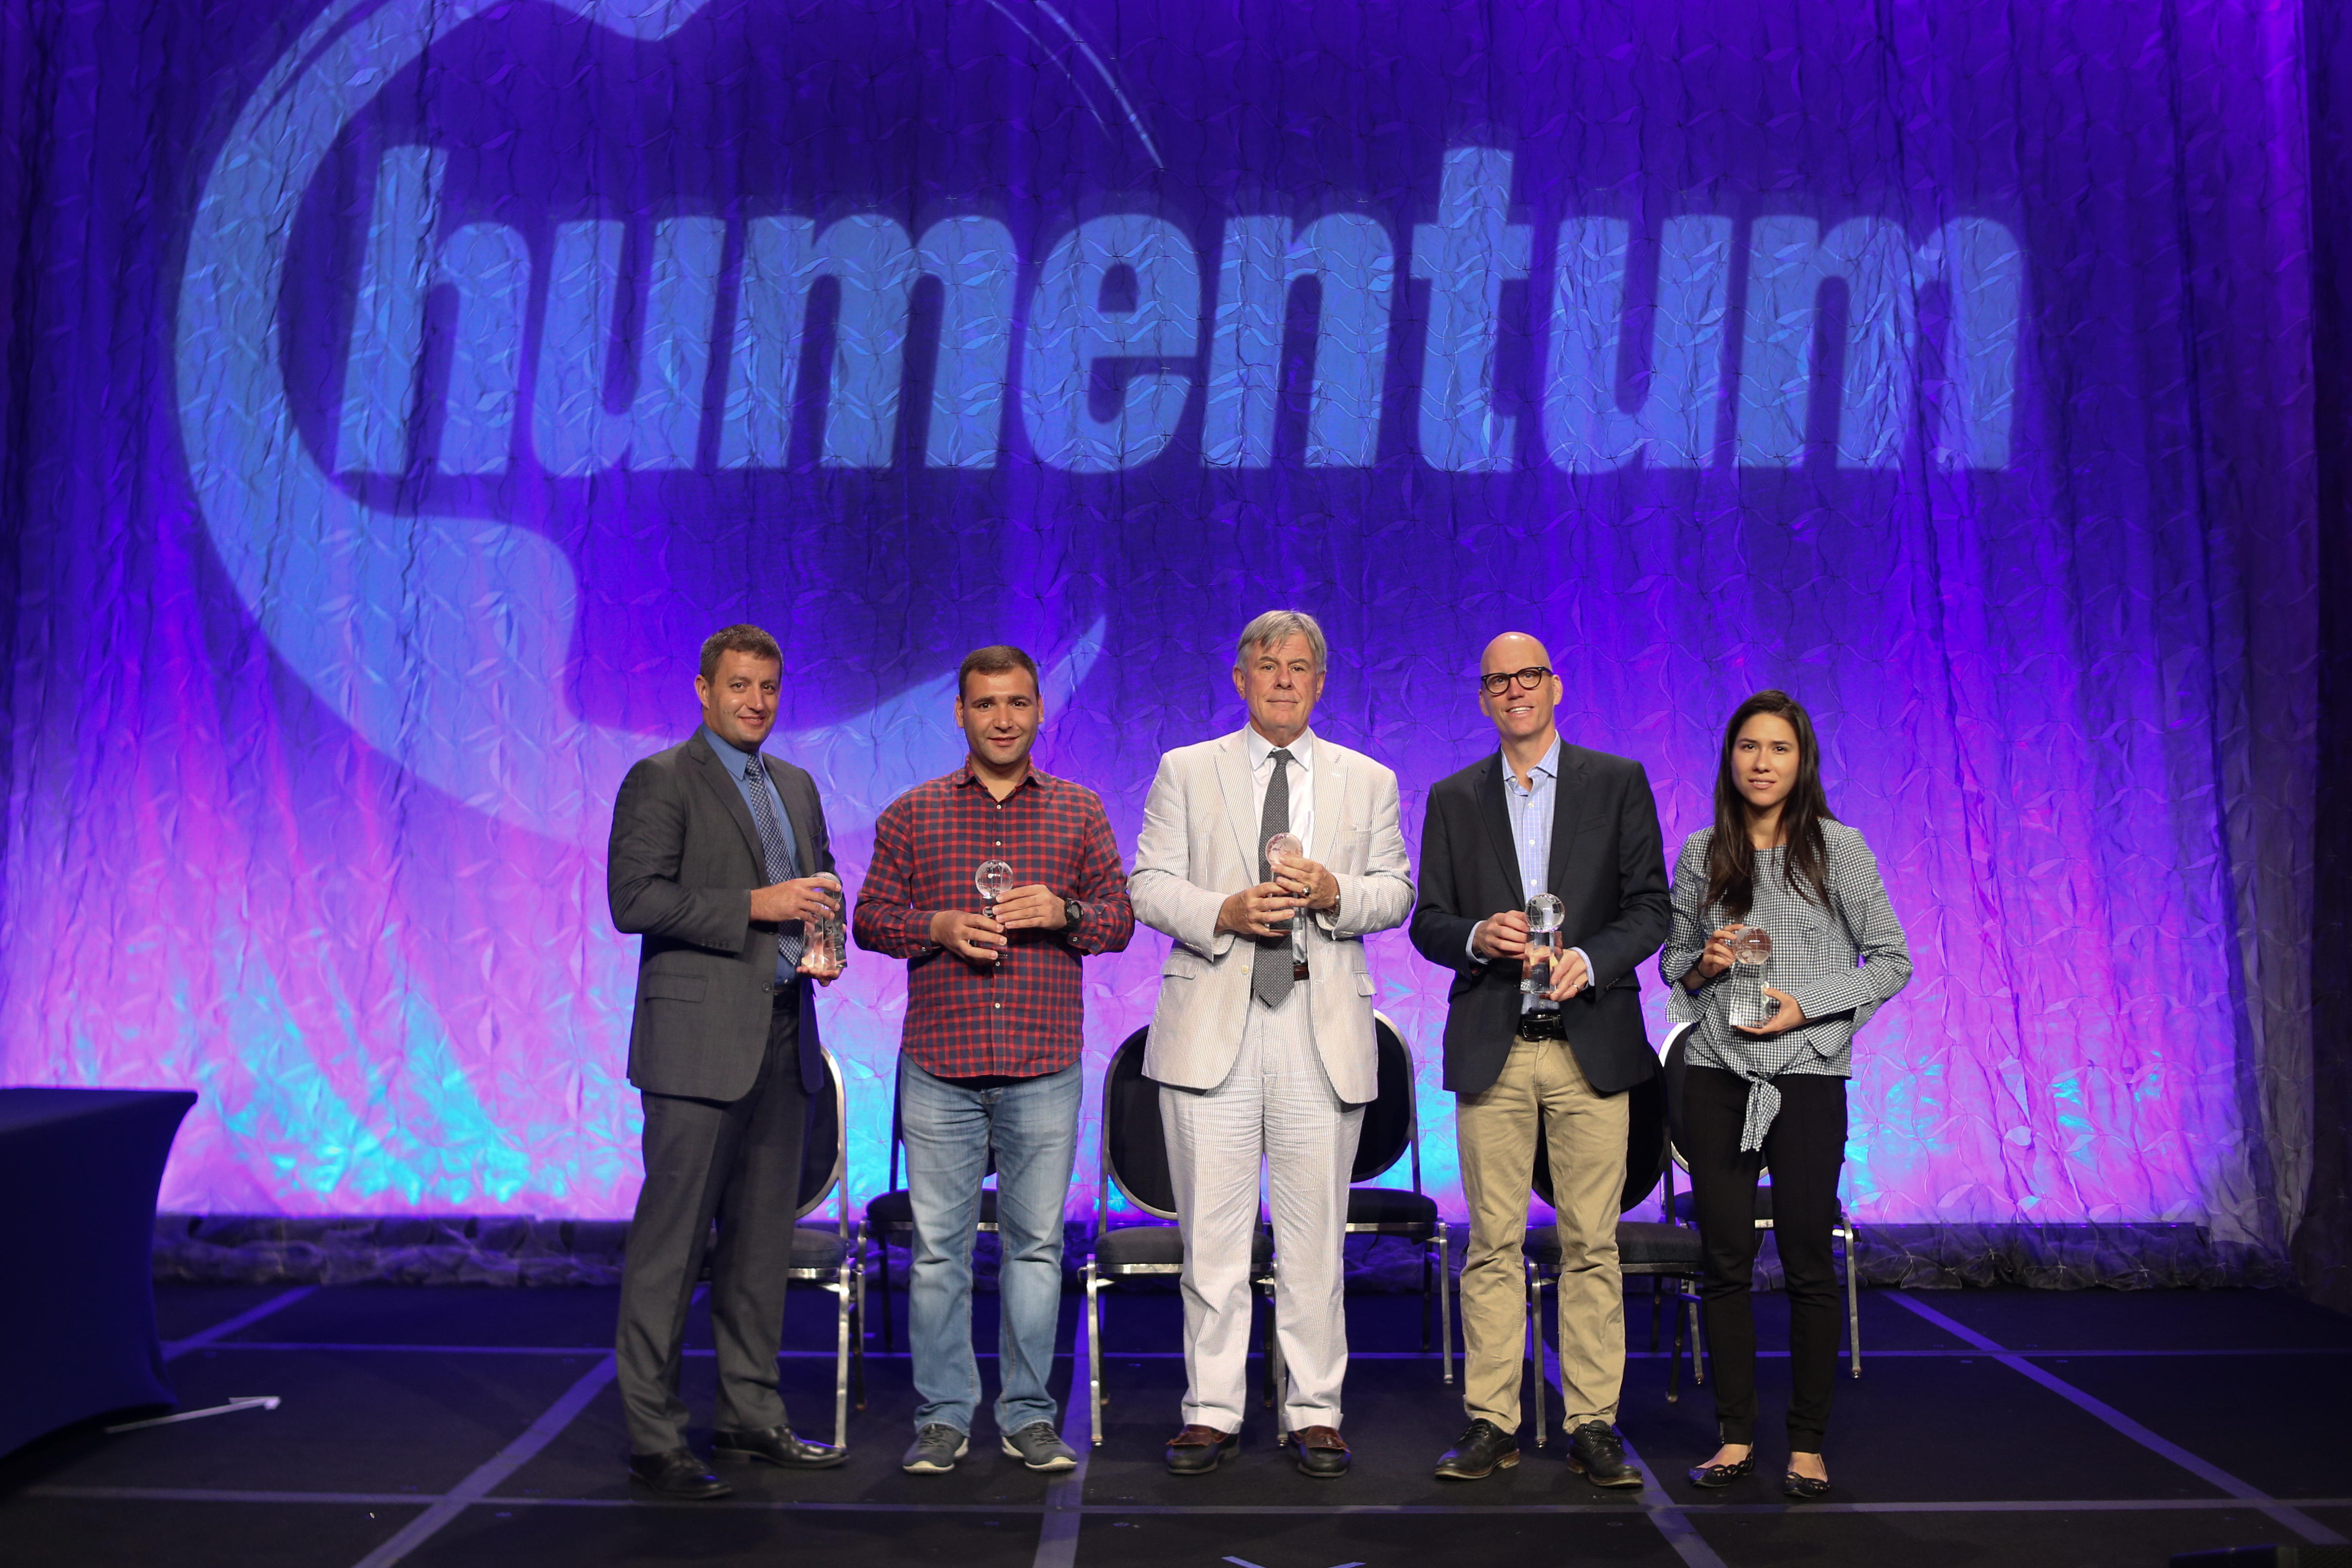 2018 Humentum Award winners.